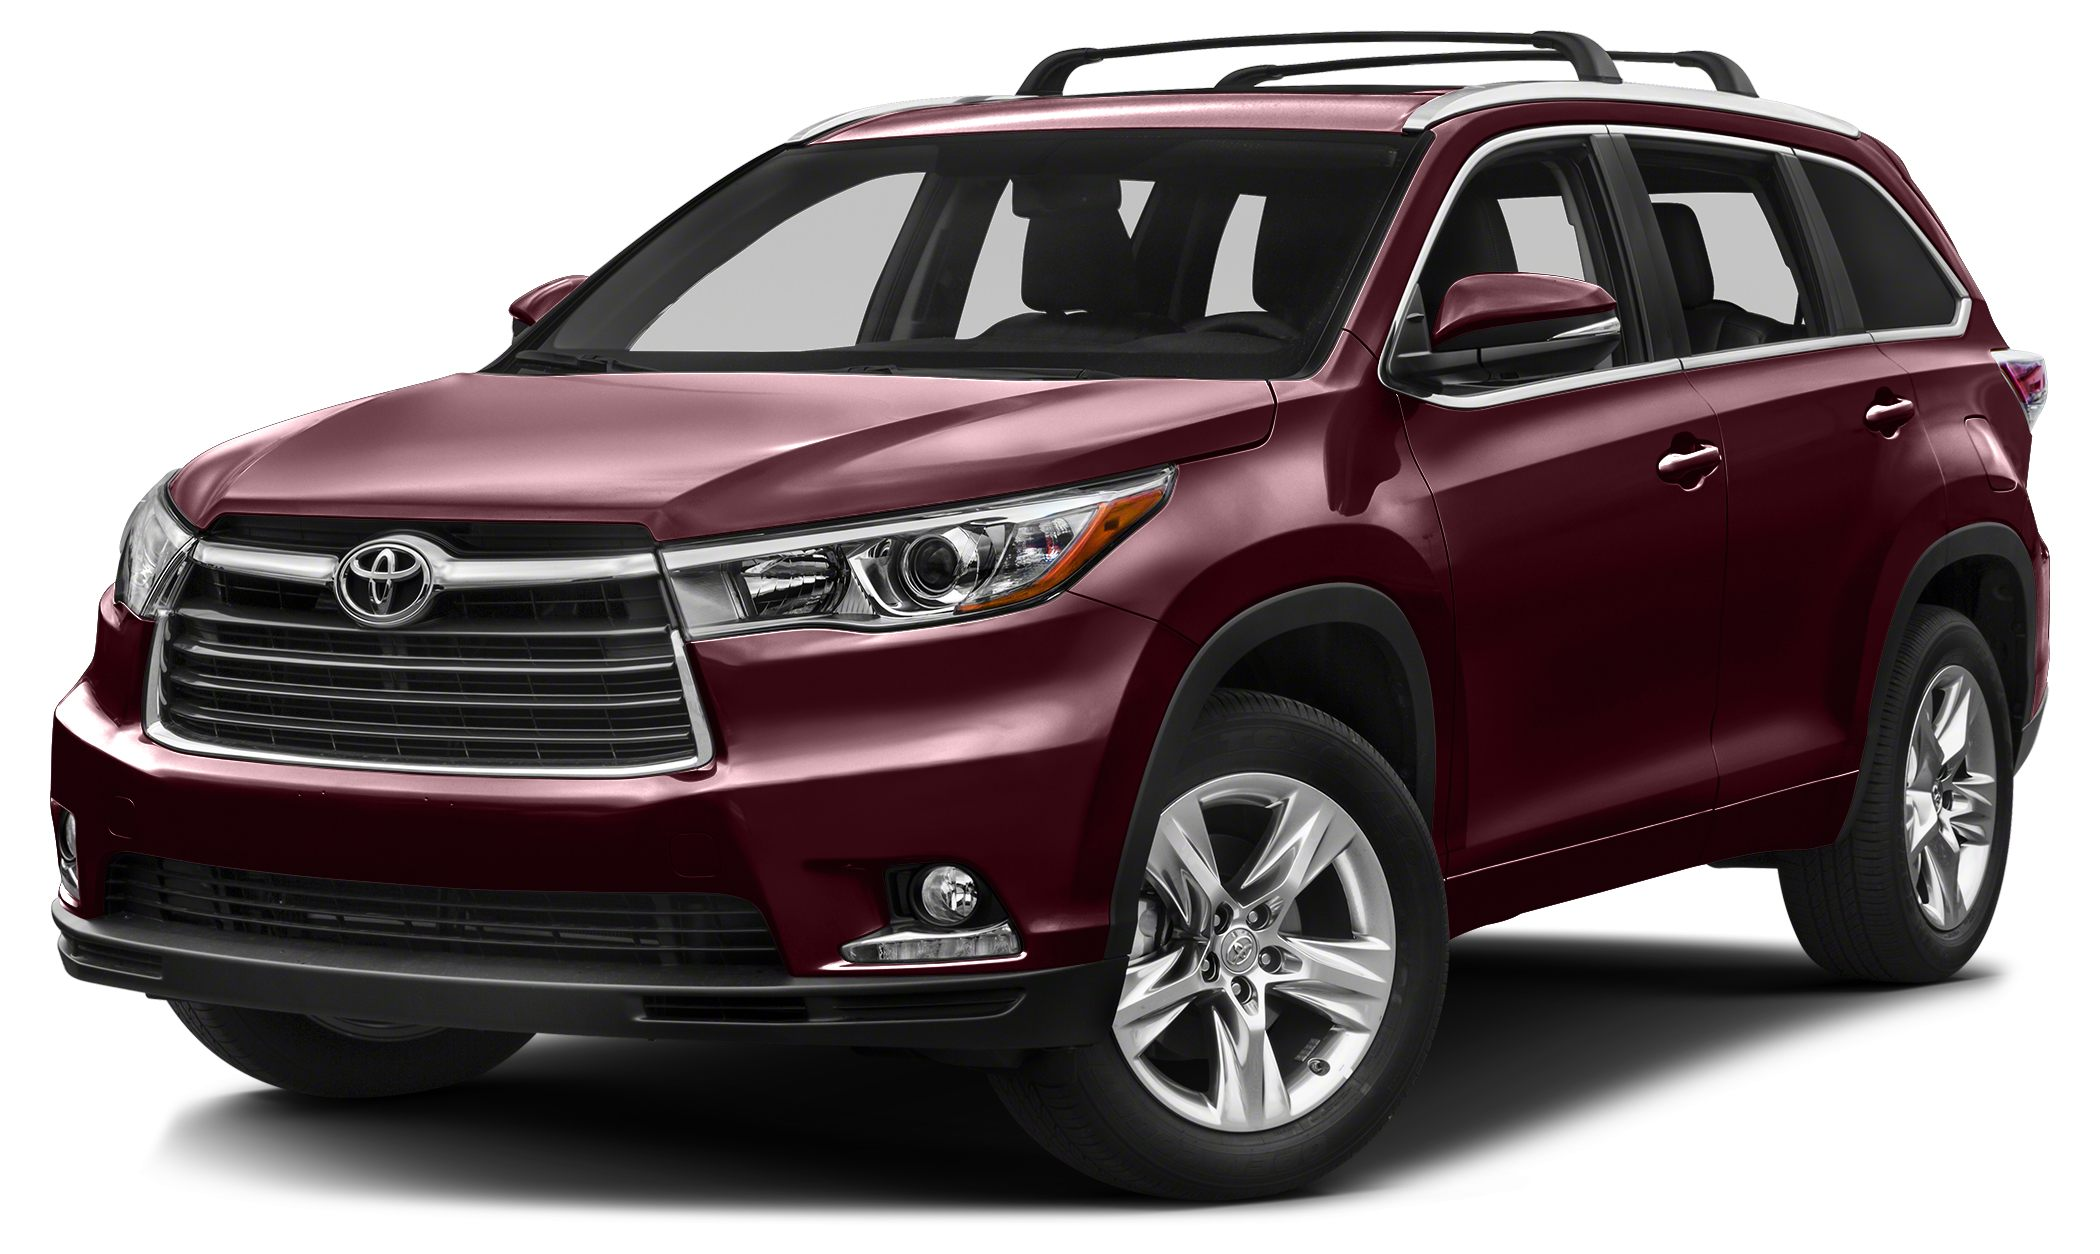 2016 Toyota Highlander Limited Platinum Miles 0Color Ooh La La Rouge Mica Stock 52314 VIN 5T